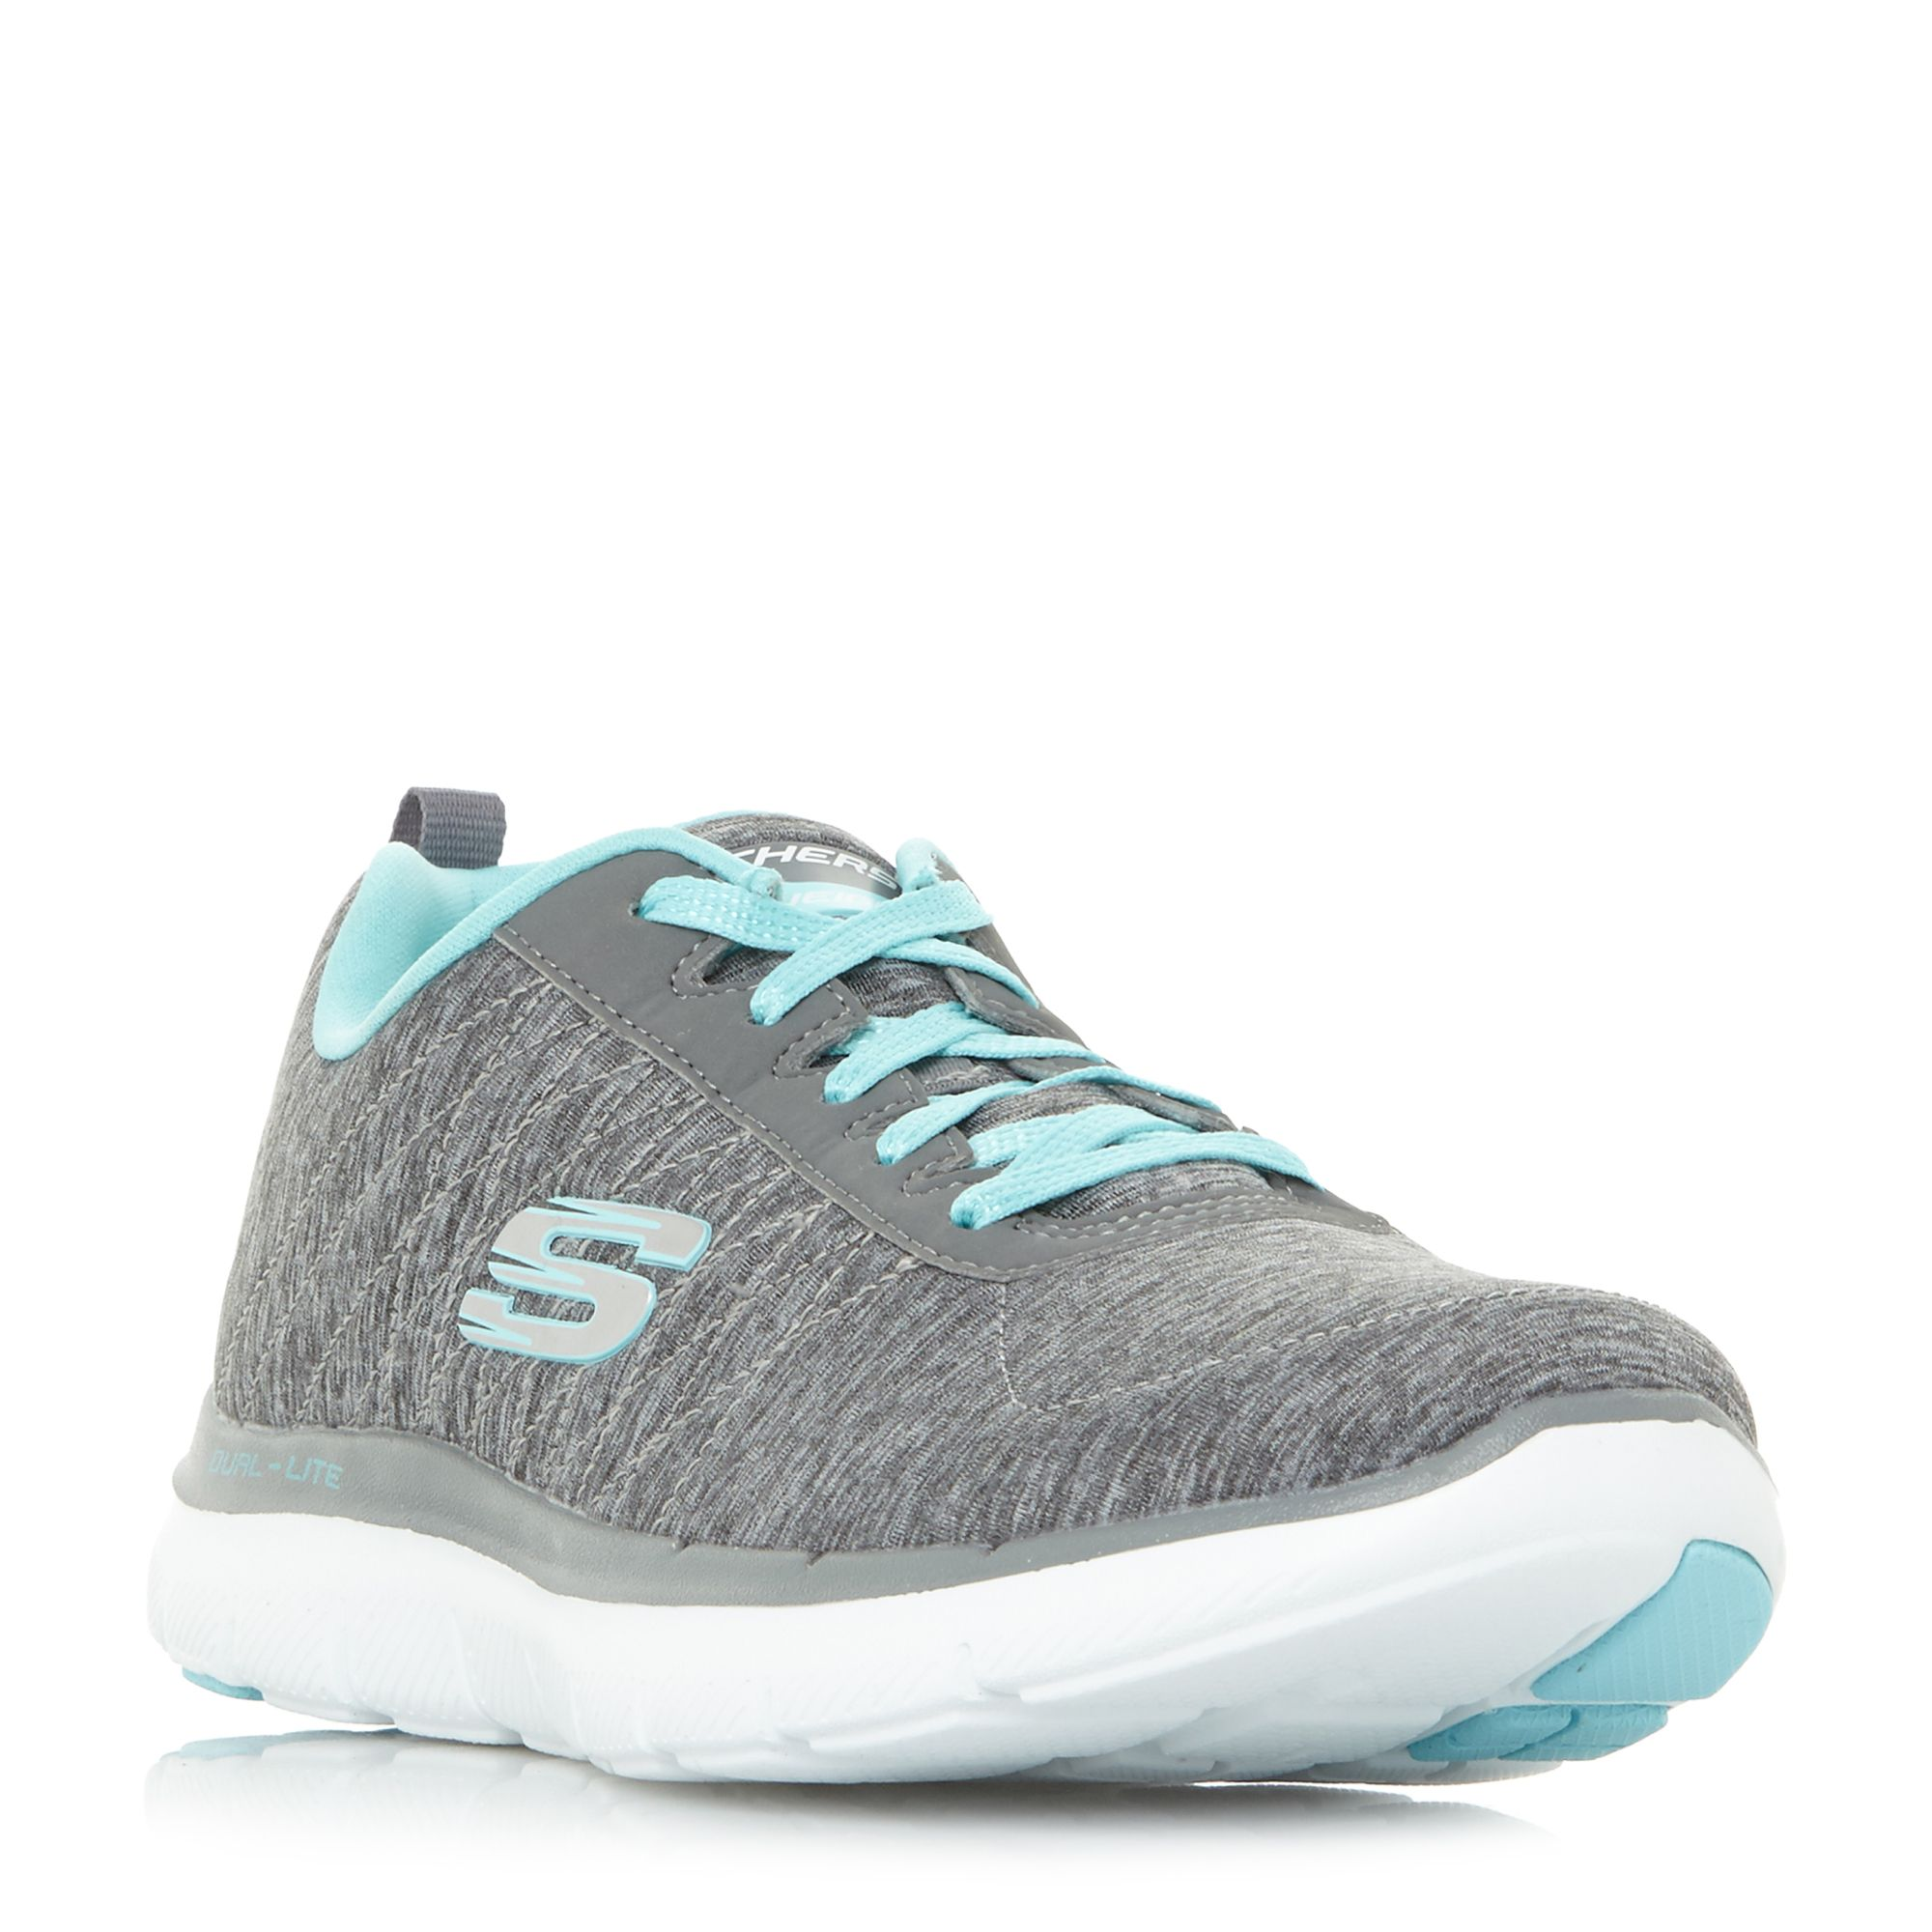 Skechers Flex Lace Up Trainers, Grey